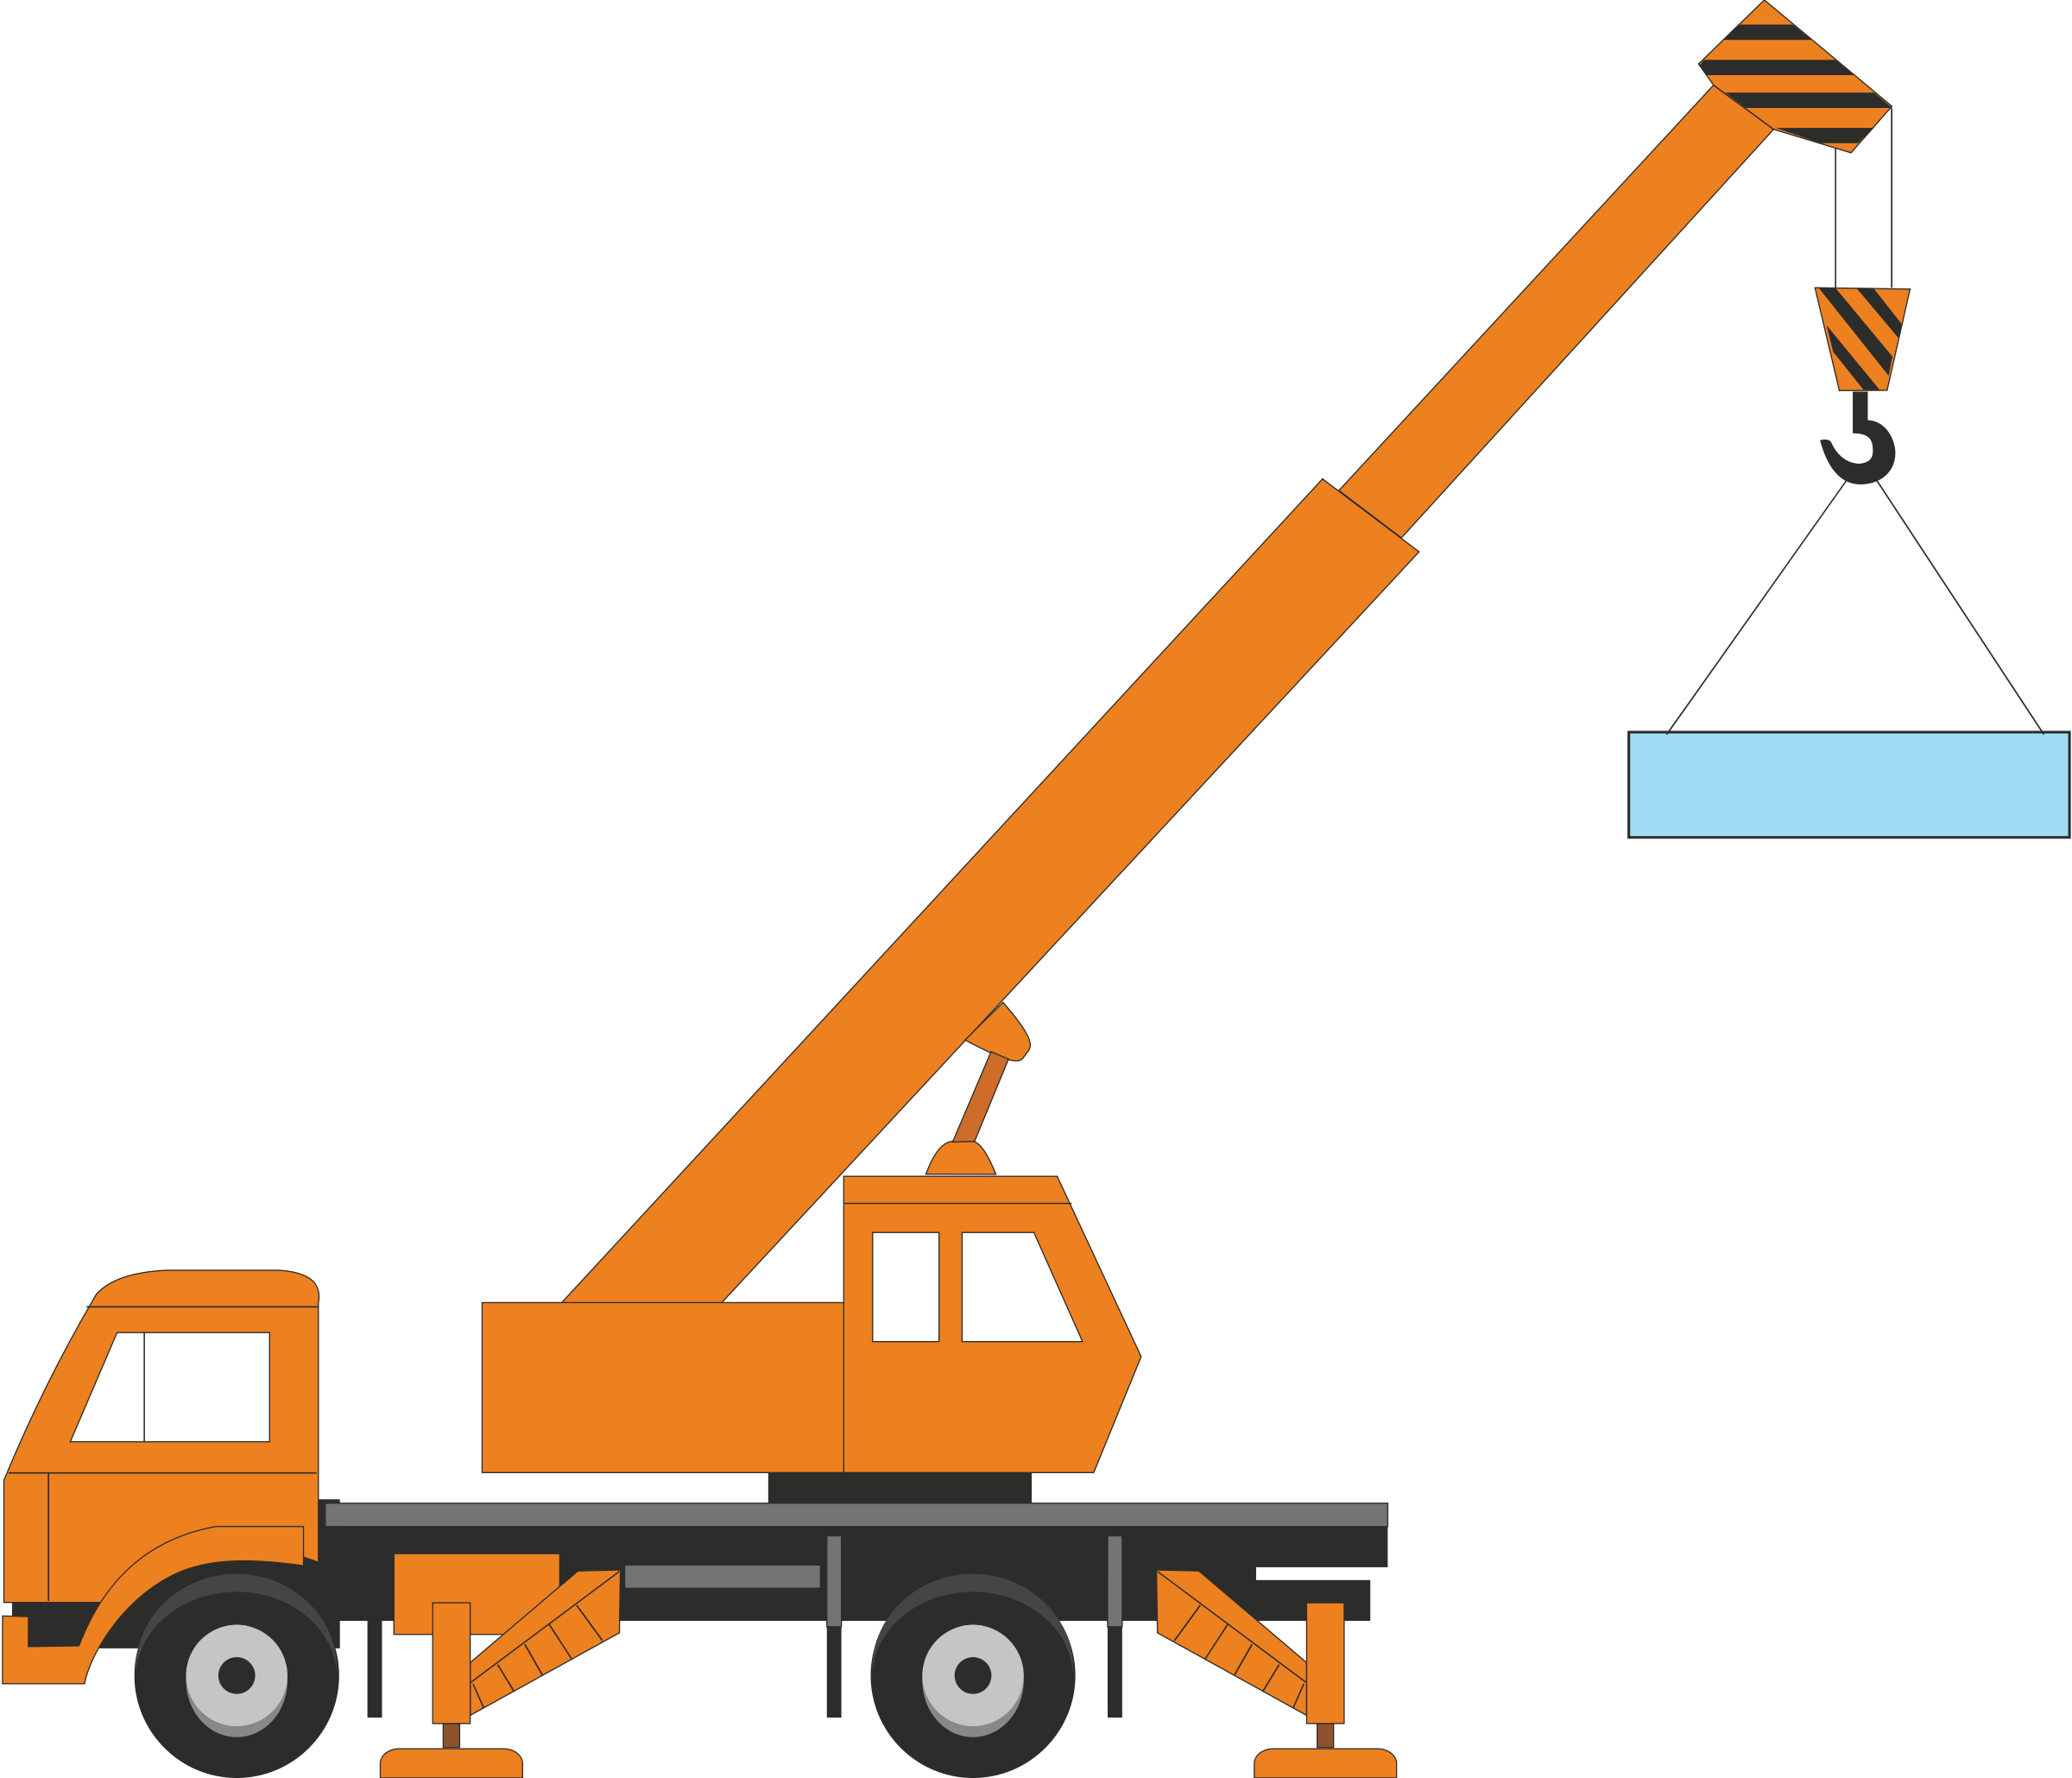 Crane clipart #3, Download drawings